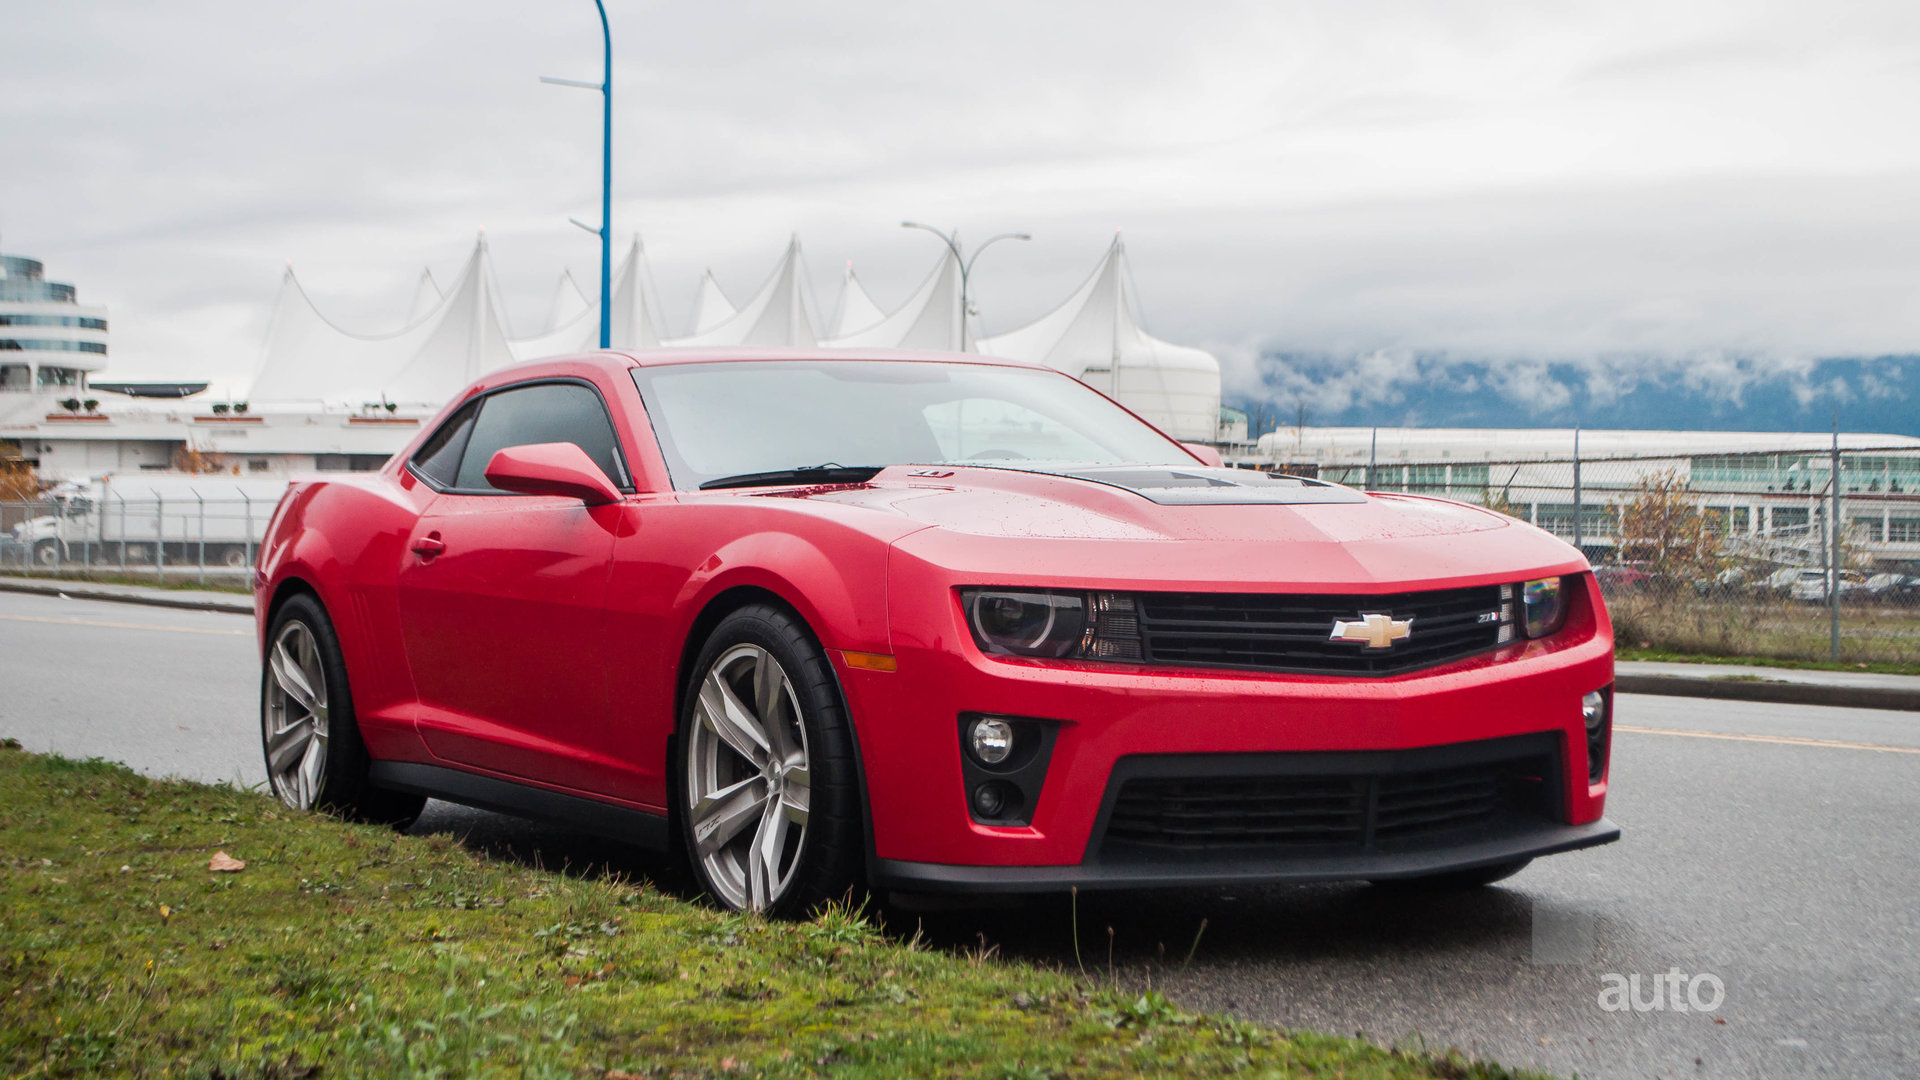 2012 Chevrolet Camaro Zl1 For Sale 75168 Mcg